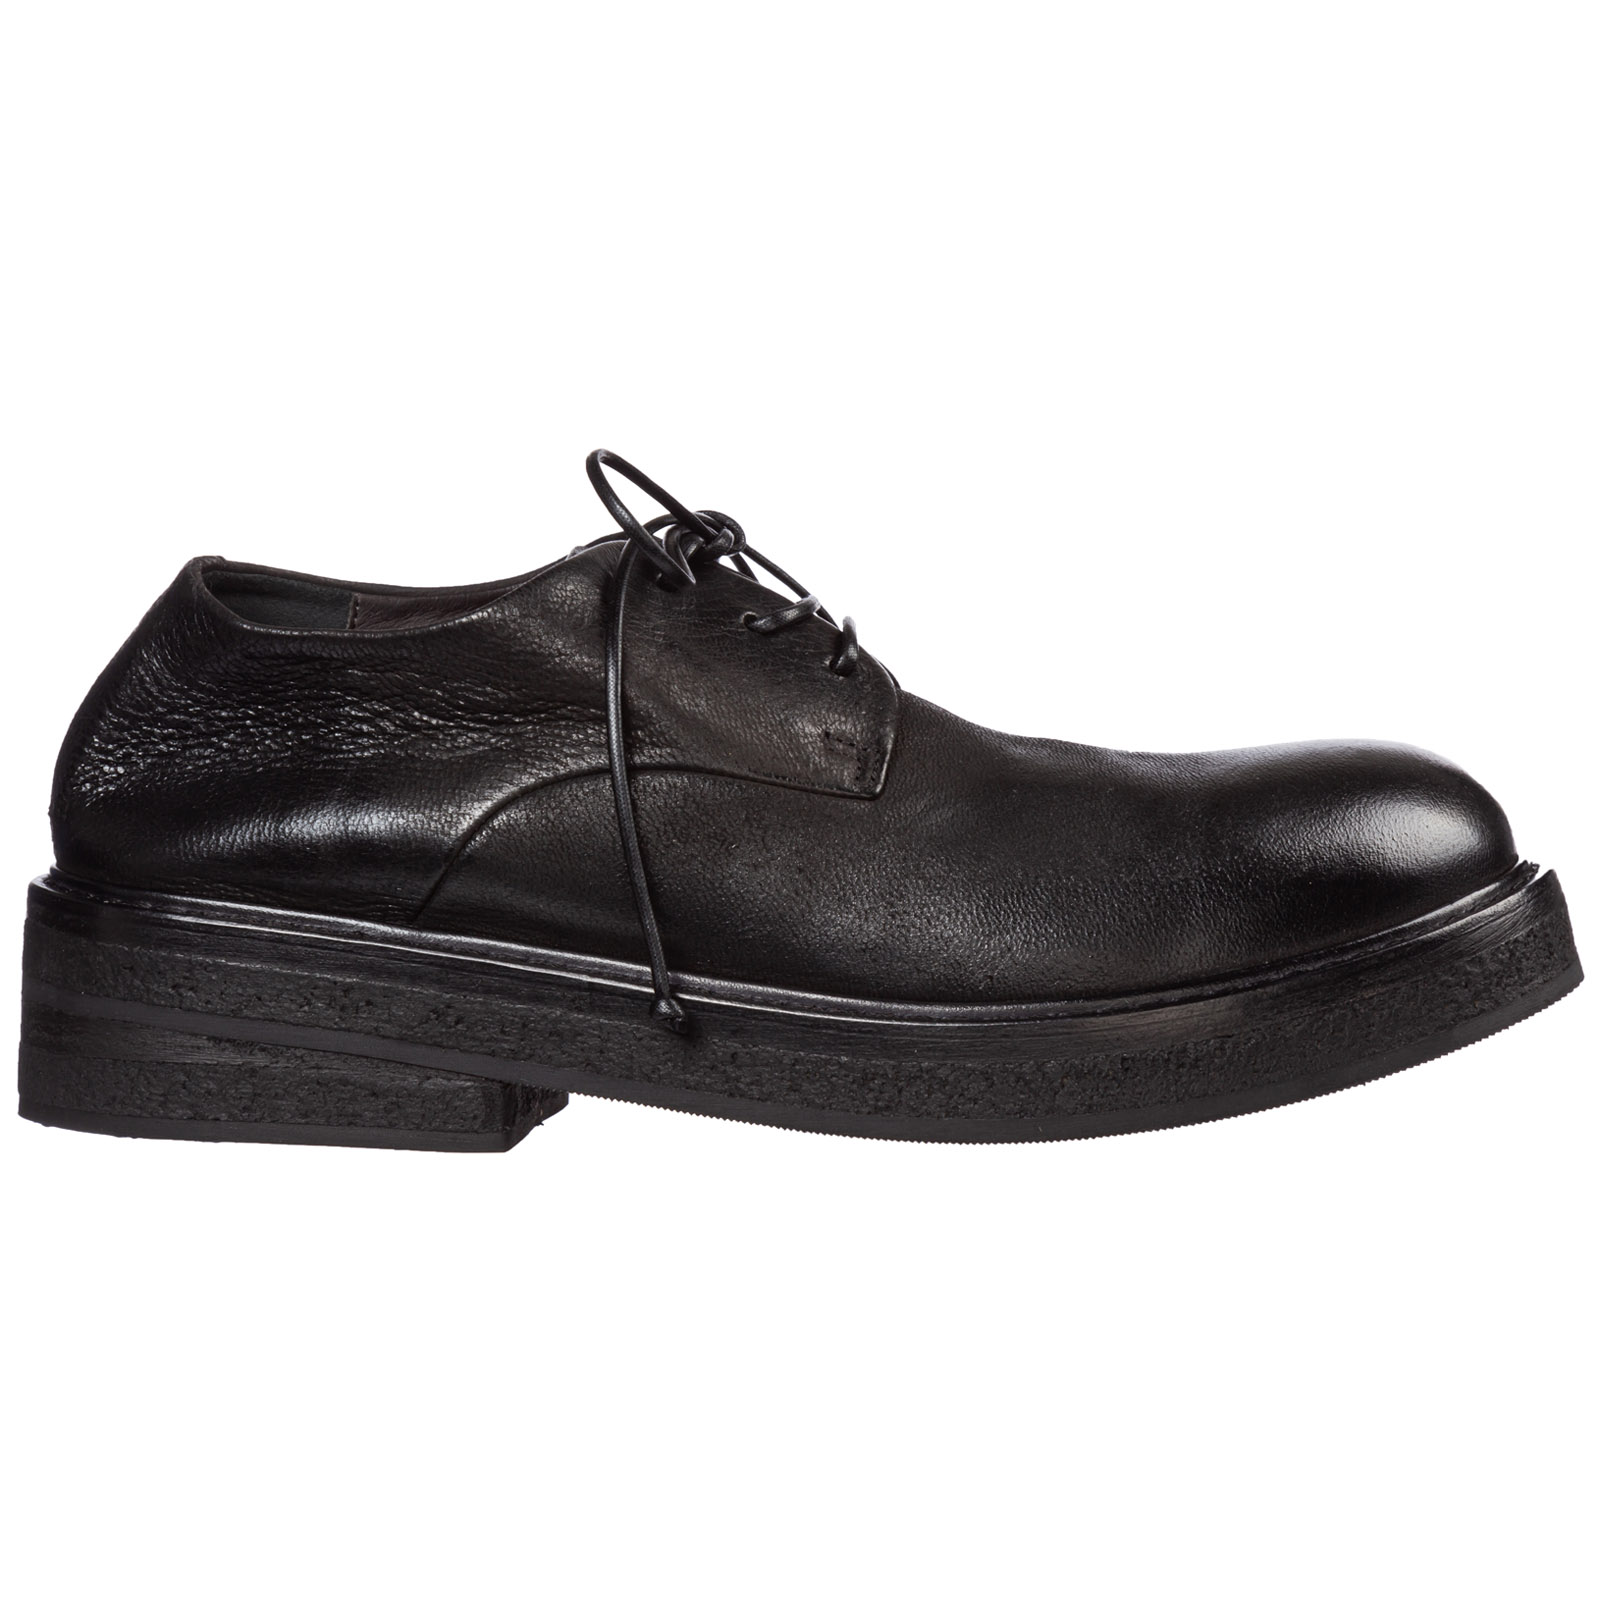 Marsèll Shoes MEN'S CLASSIC LEATHER LACE UP LACED FORMAL SHOES DERBY